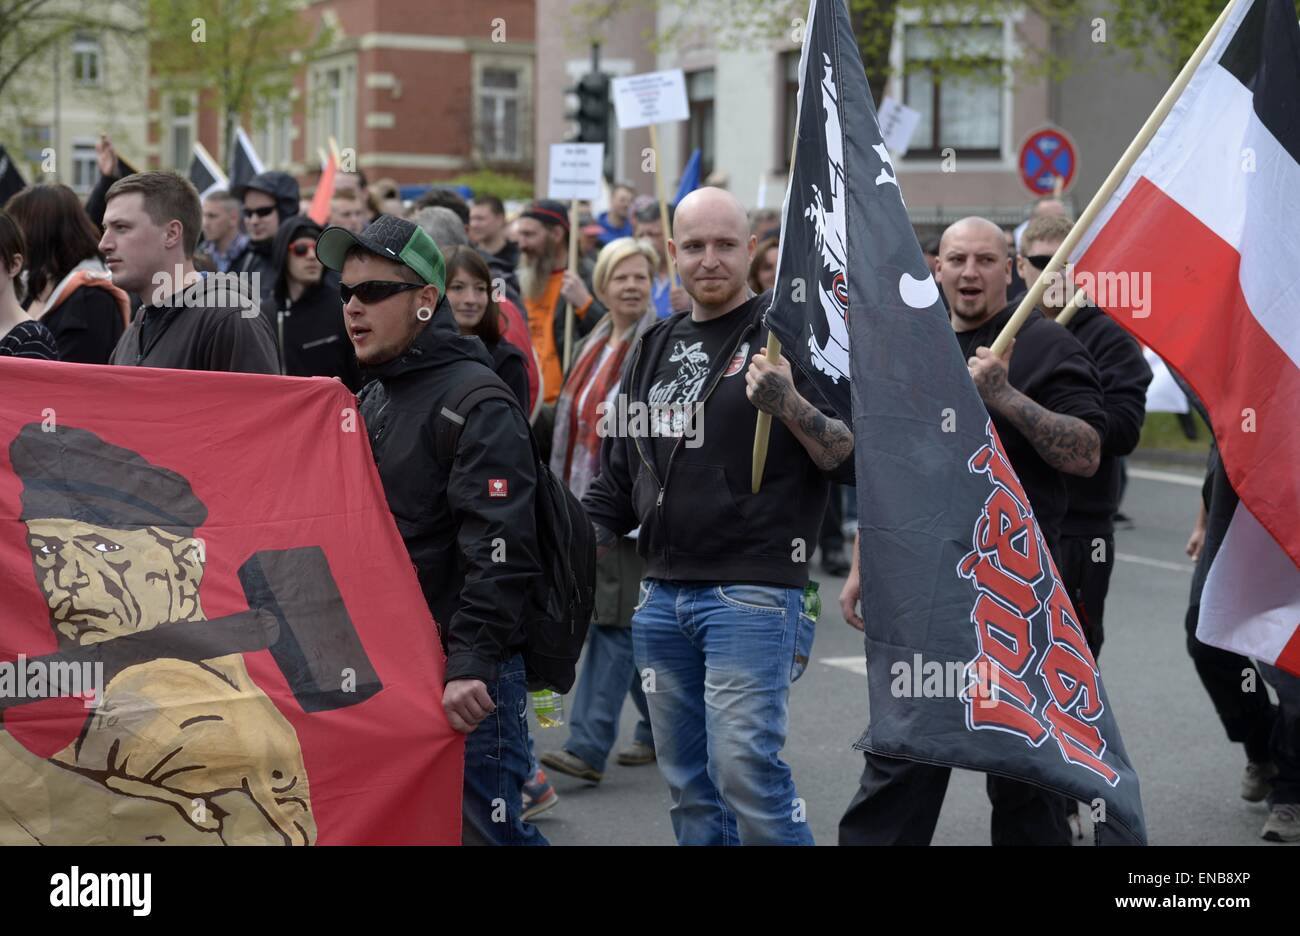 Saalfeld, Germany. 01st May, 2015. Participants in a march organized by the right-wing extremist group 'Der - Stock Image